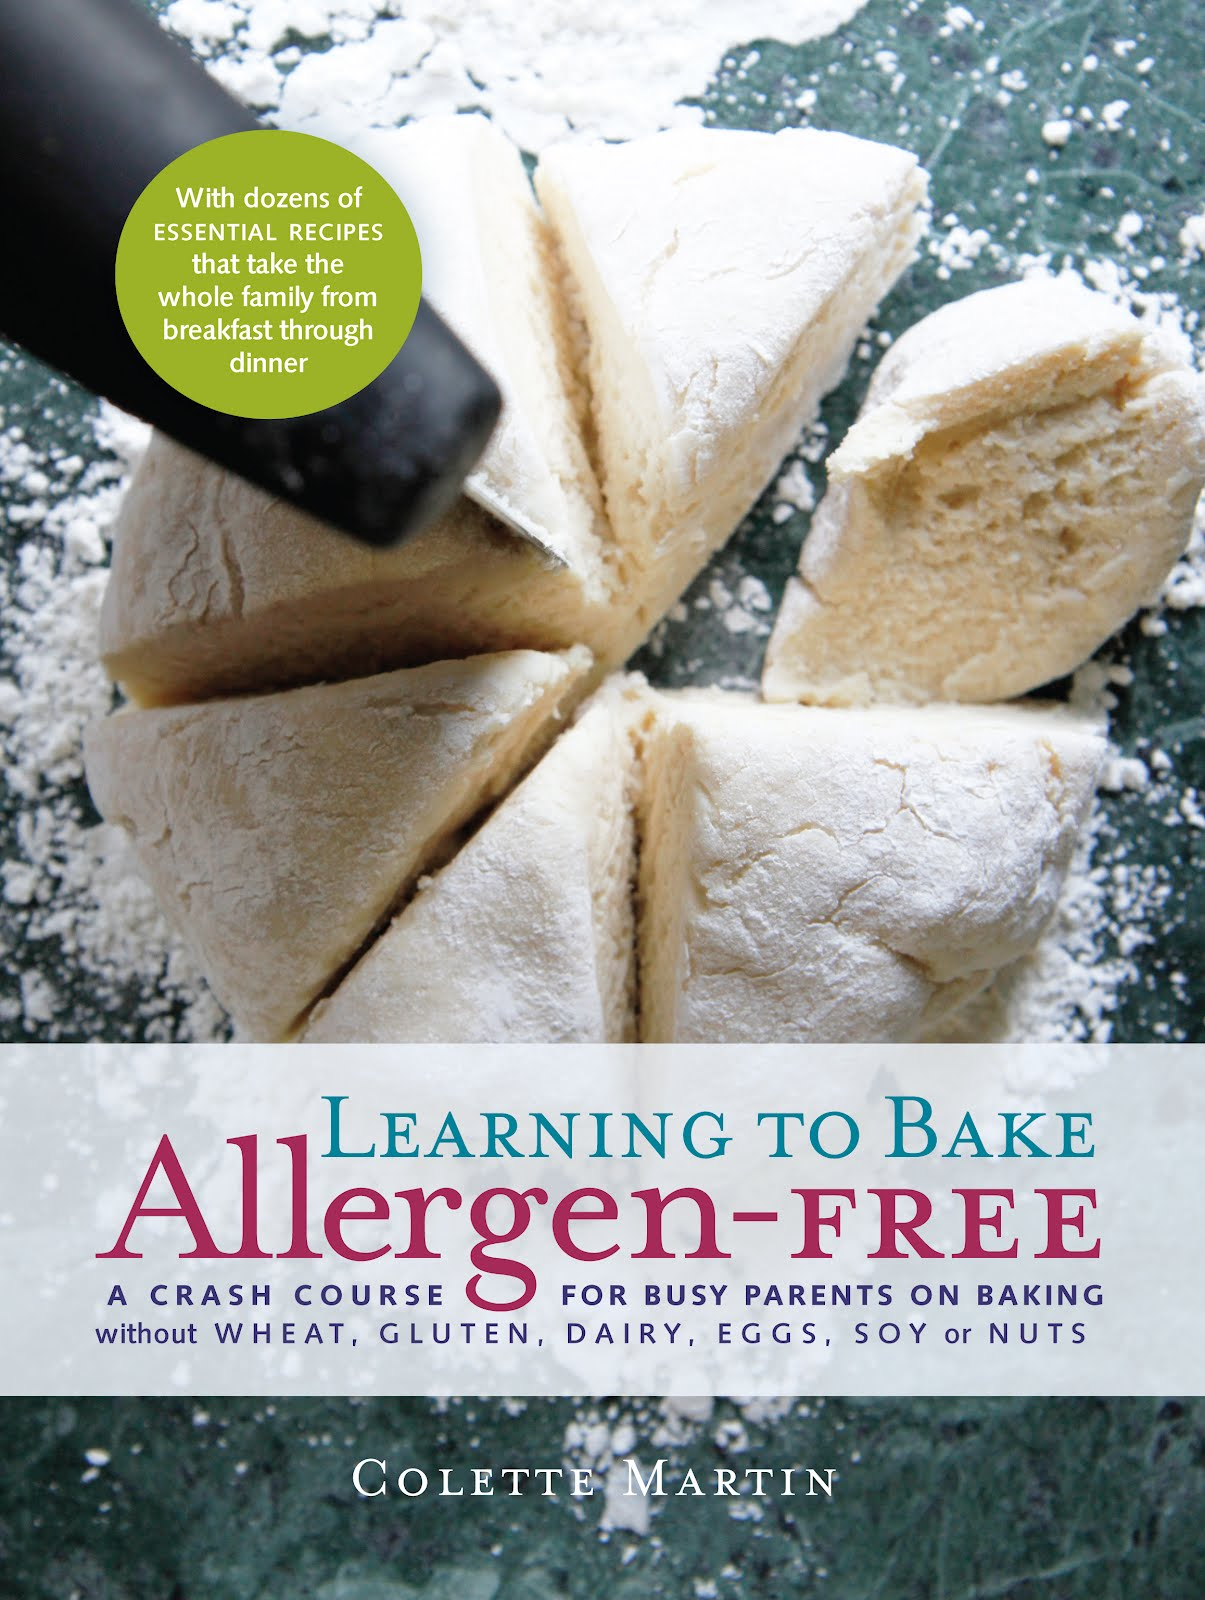 Learning to eat allergy free about the books learning to bake allergen free a crash course for busy parents on baking without wheat gluten dairy eggs soy or nuts forumfinder Choice Image